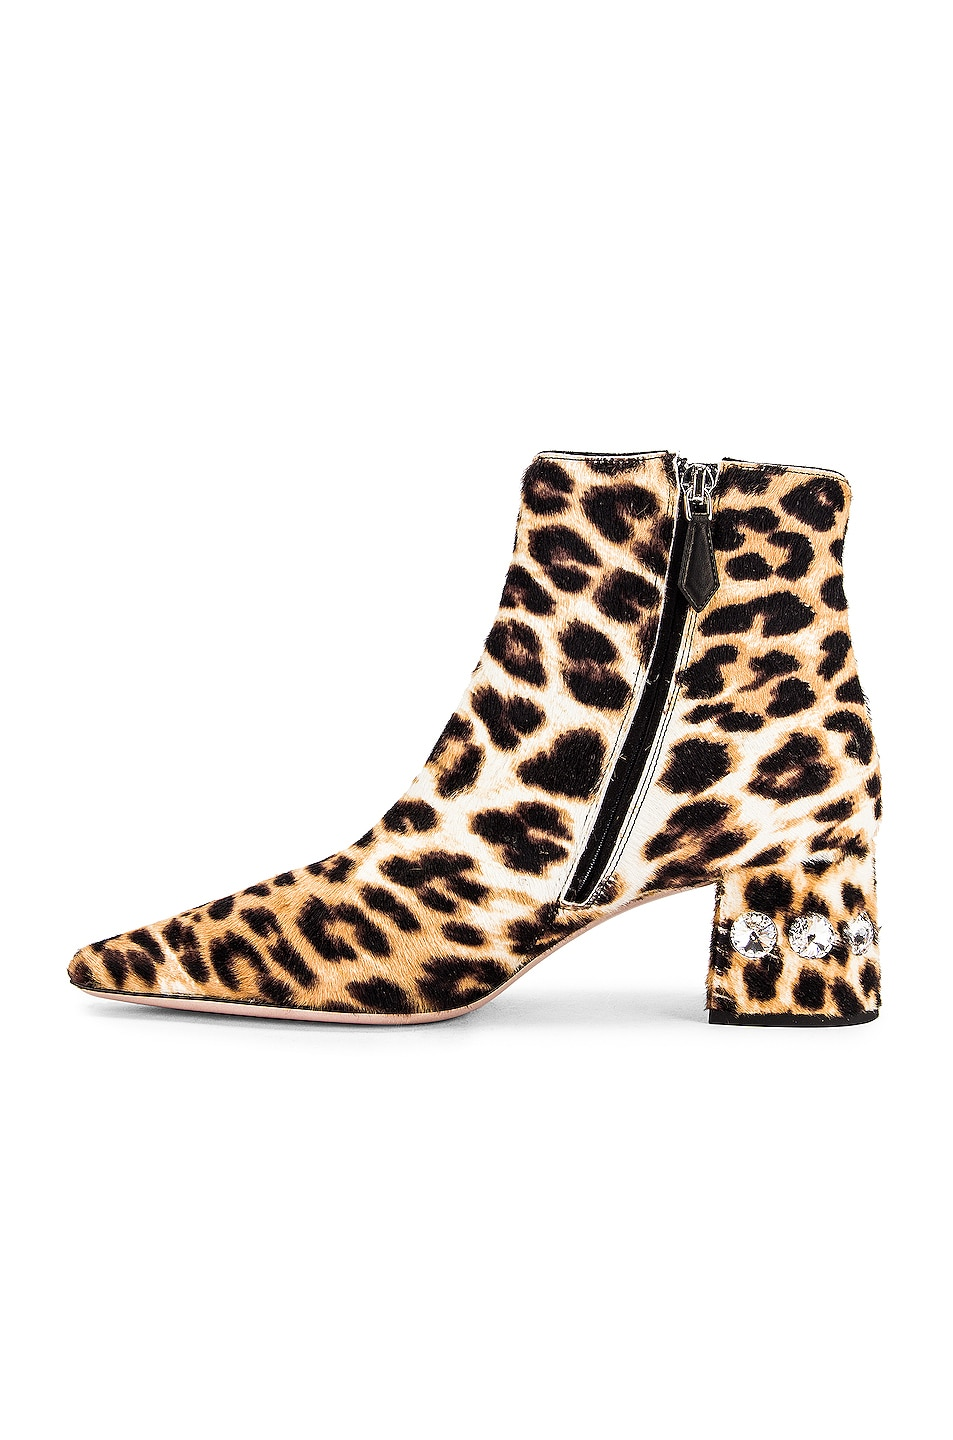 Image 5 of Miu Miu Jeweled Fur Ankle Boots in Leopard